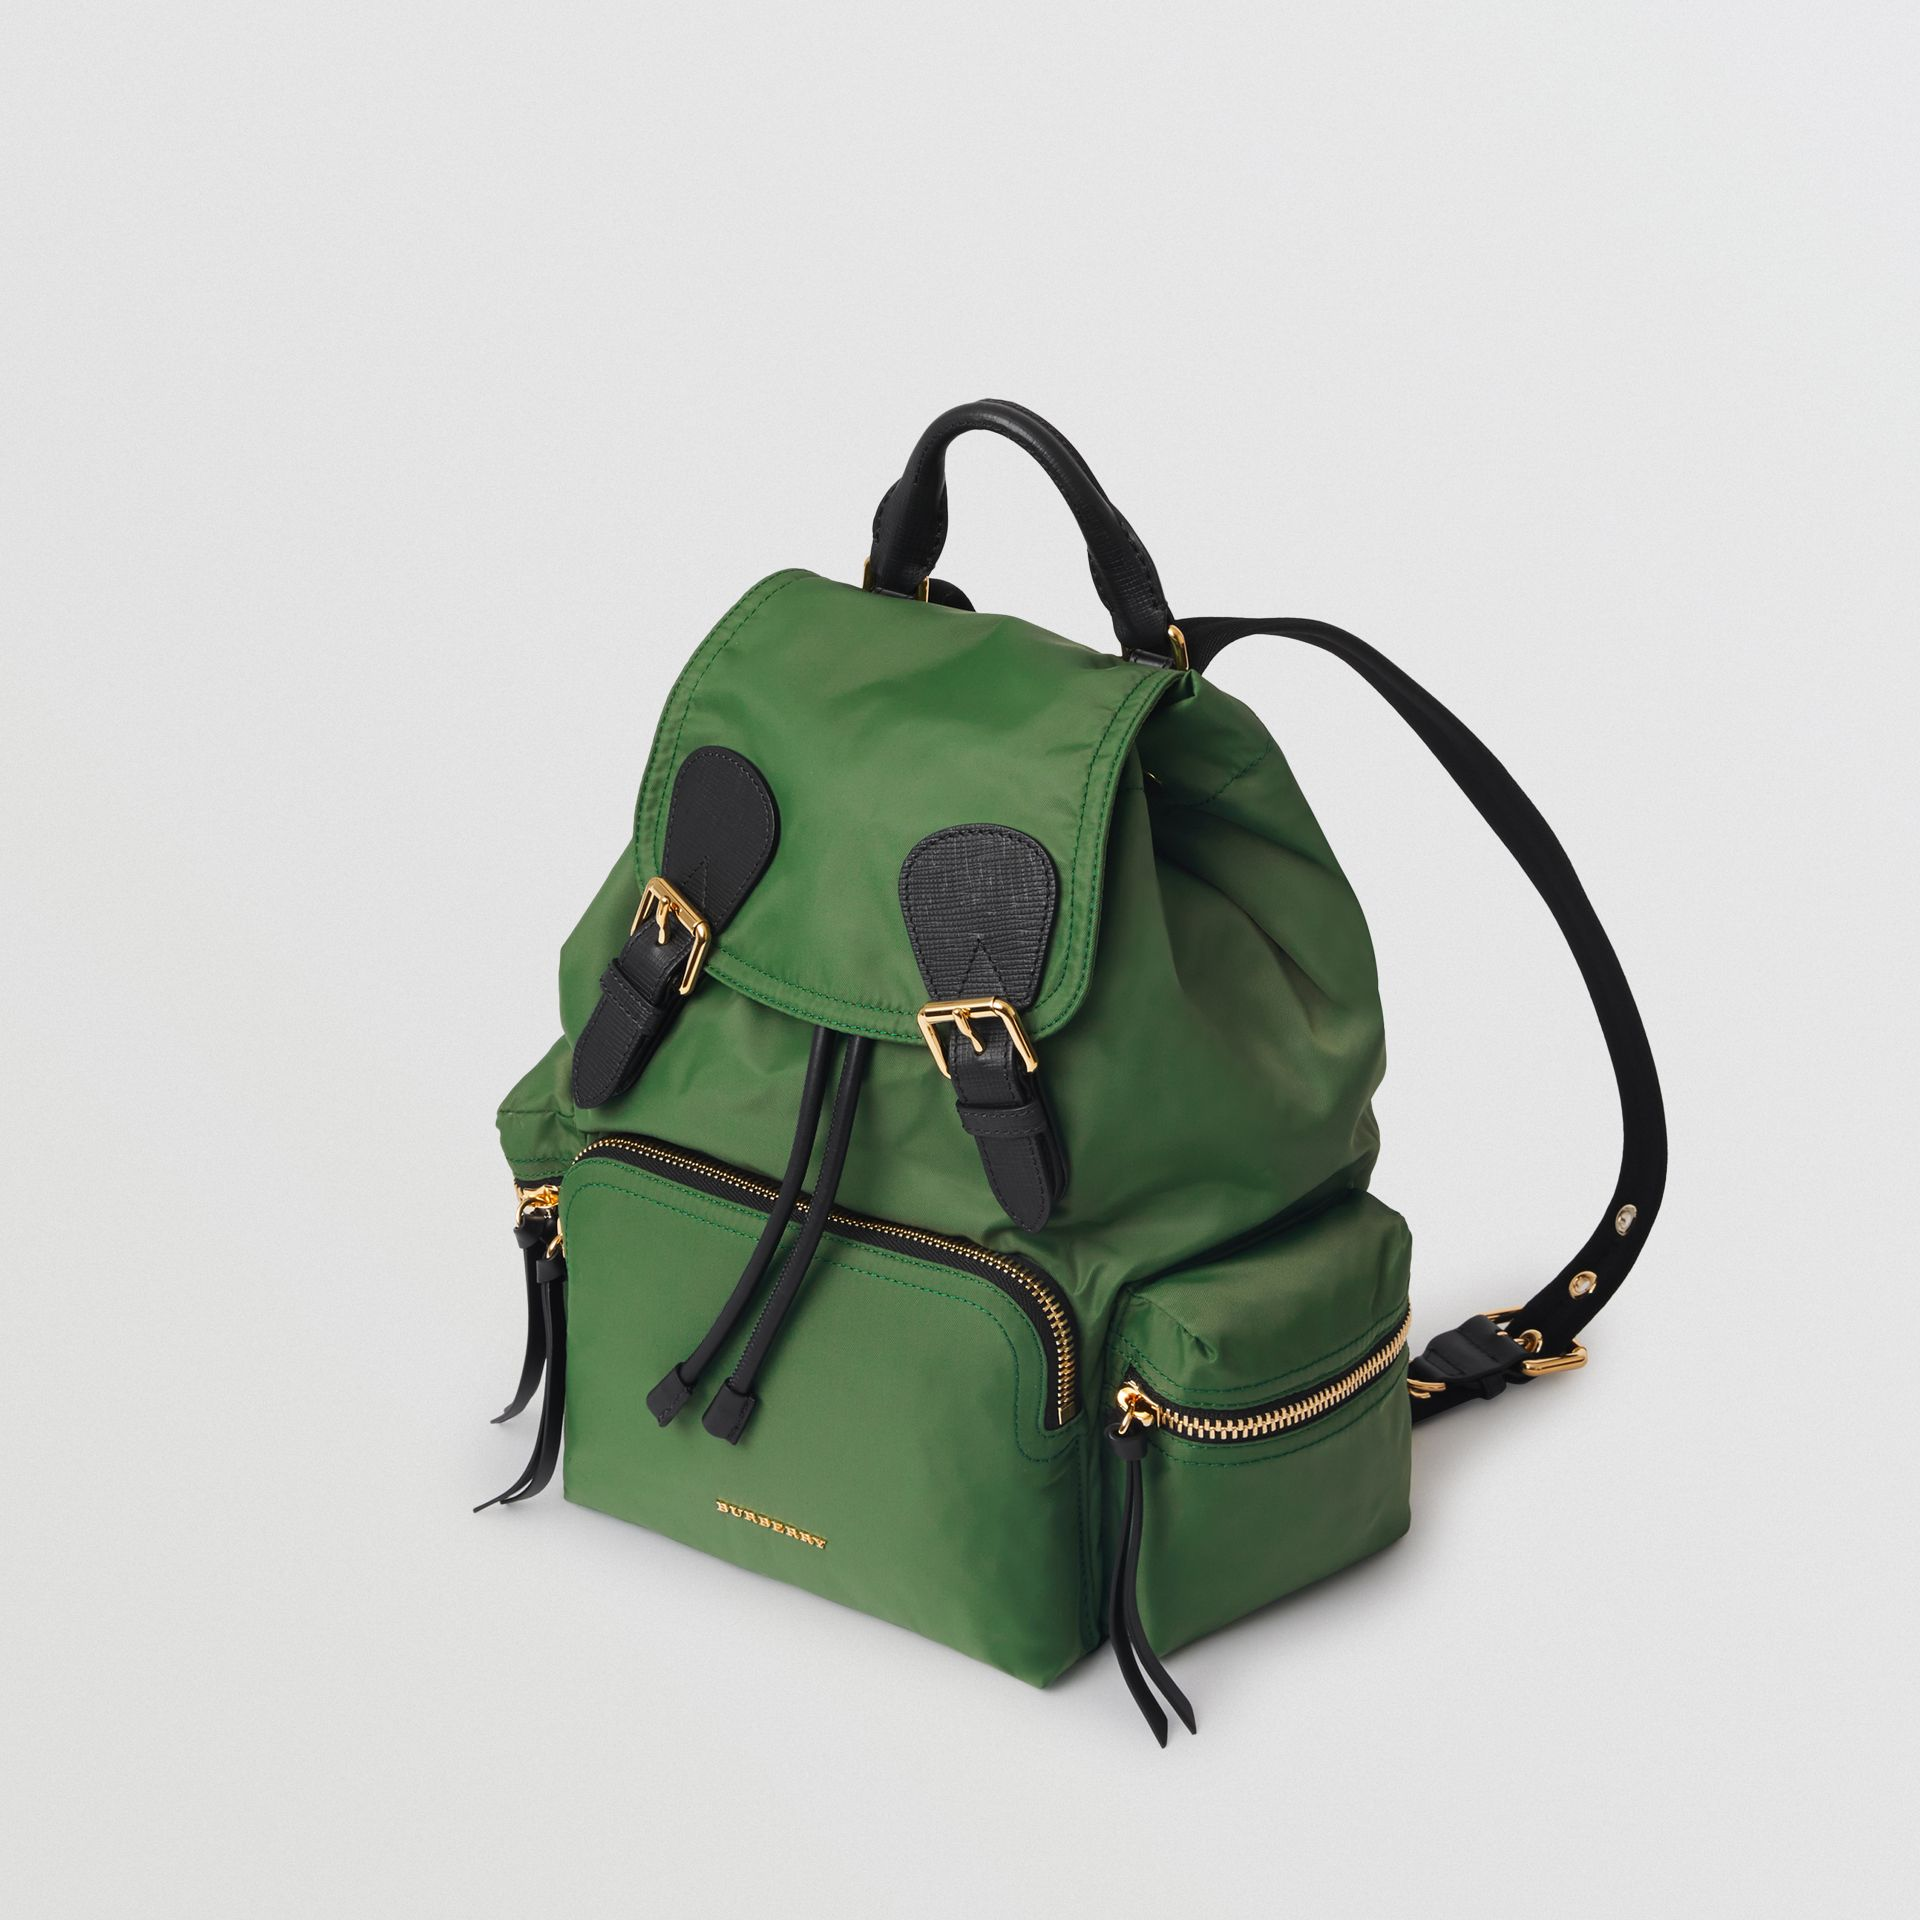 Sac The Rucksack moyen en nylon technique et cuir (Vert Racing) - Femme | Burberry Canada - photo de la galerie 3